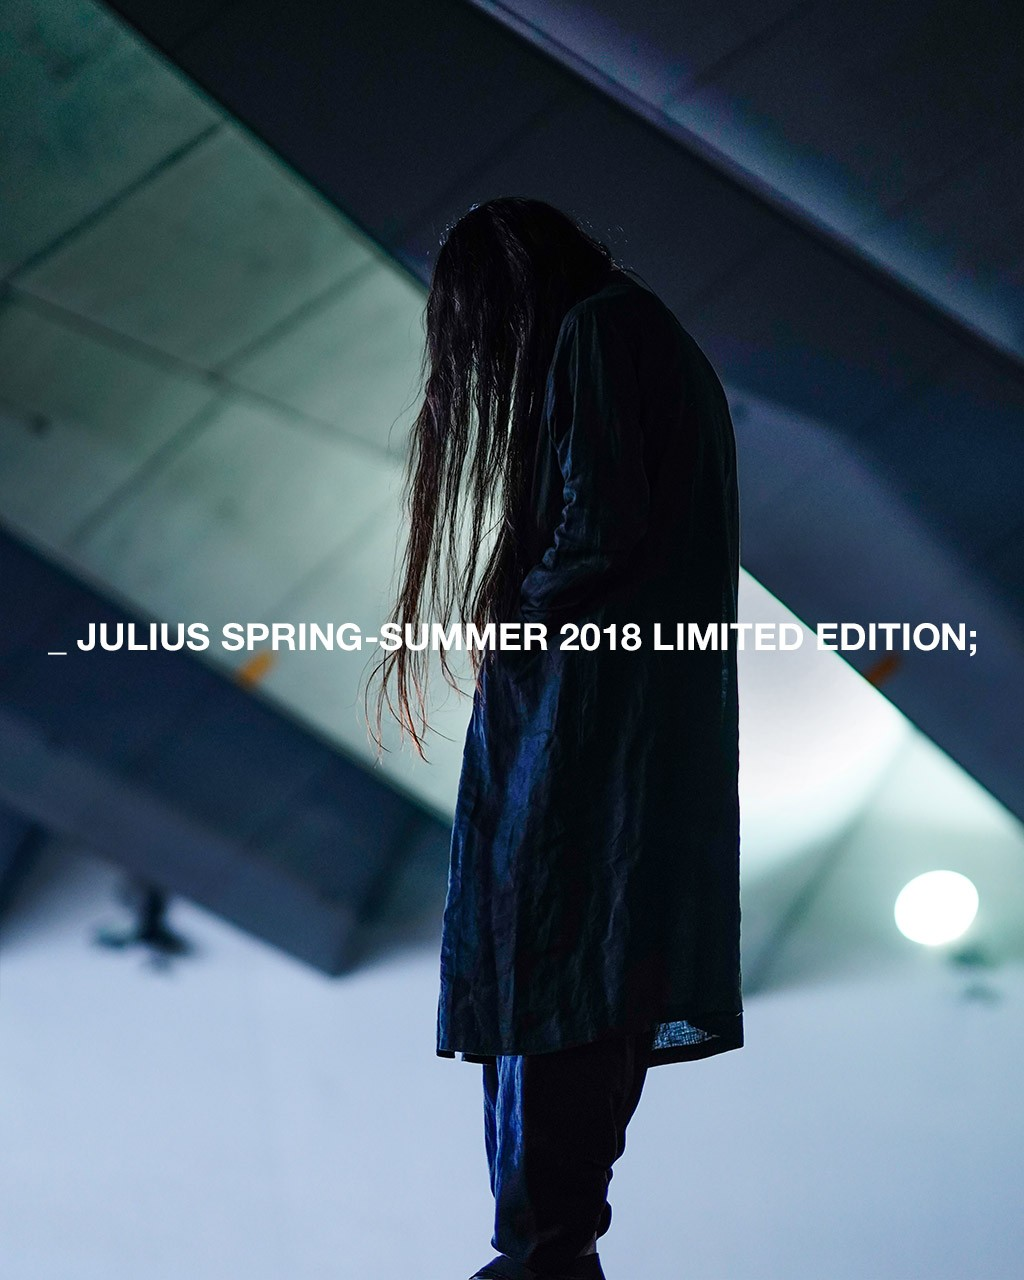 _NEW RELEASE; JULIUS TOKYO STORE LIMITED ITEMS